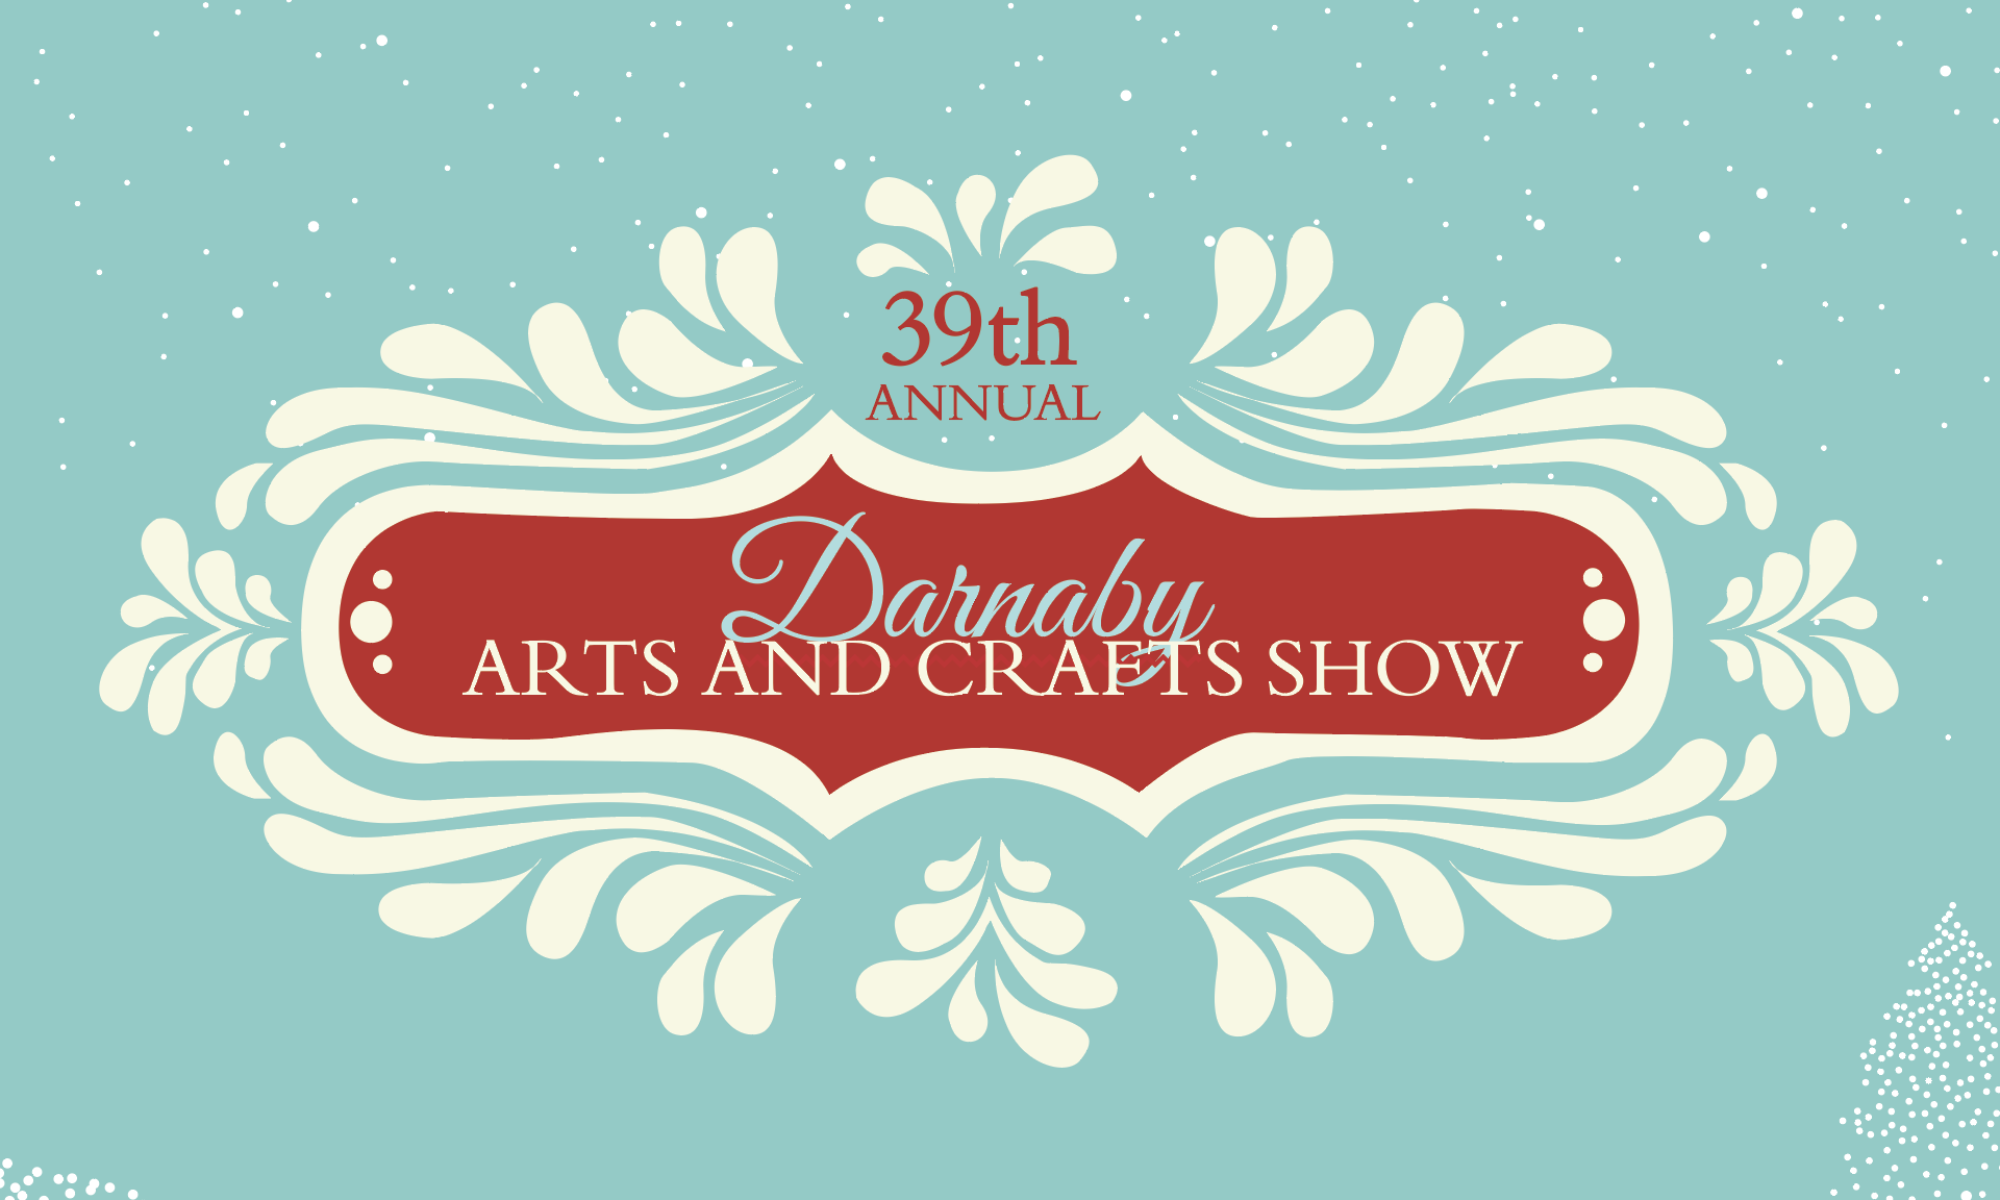 Darnaby Arts and Crafts Show